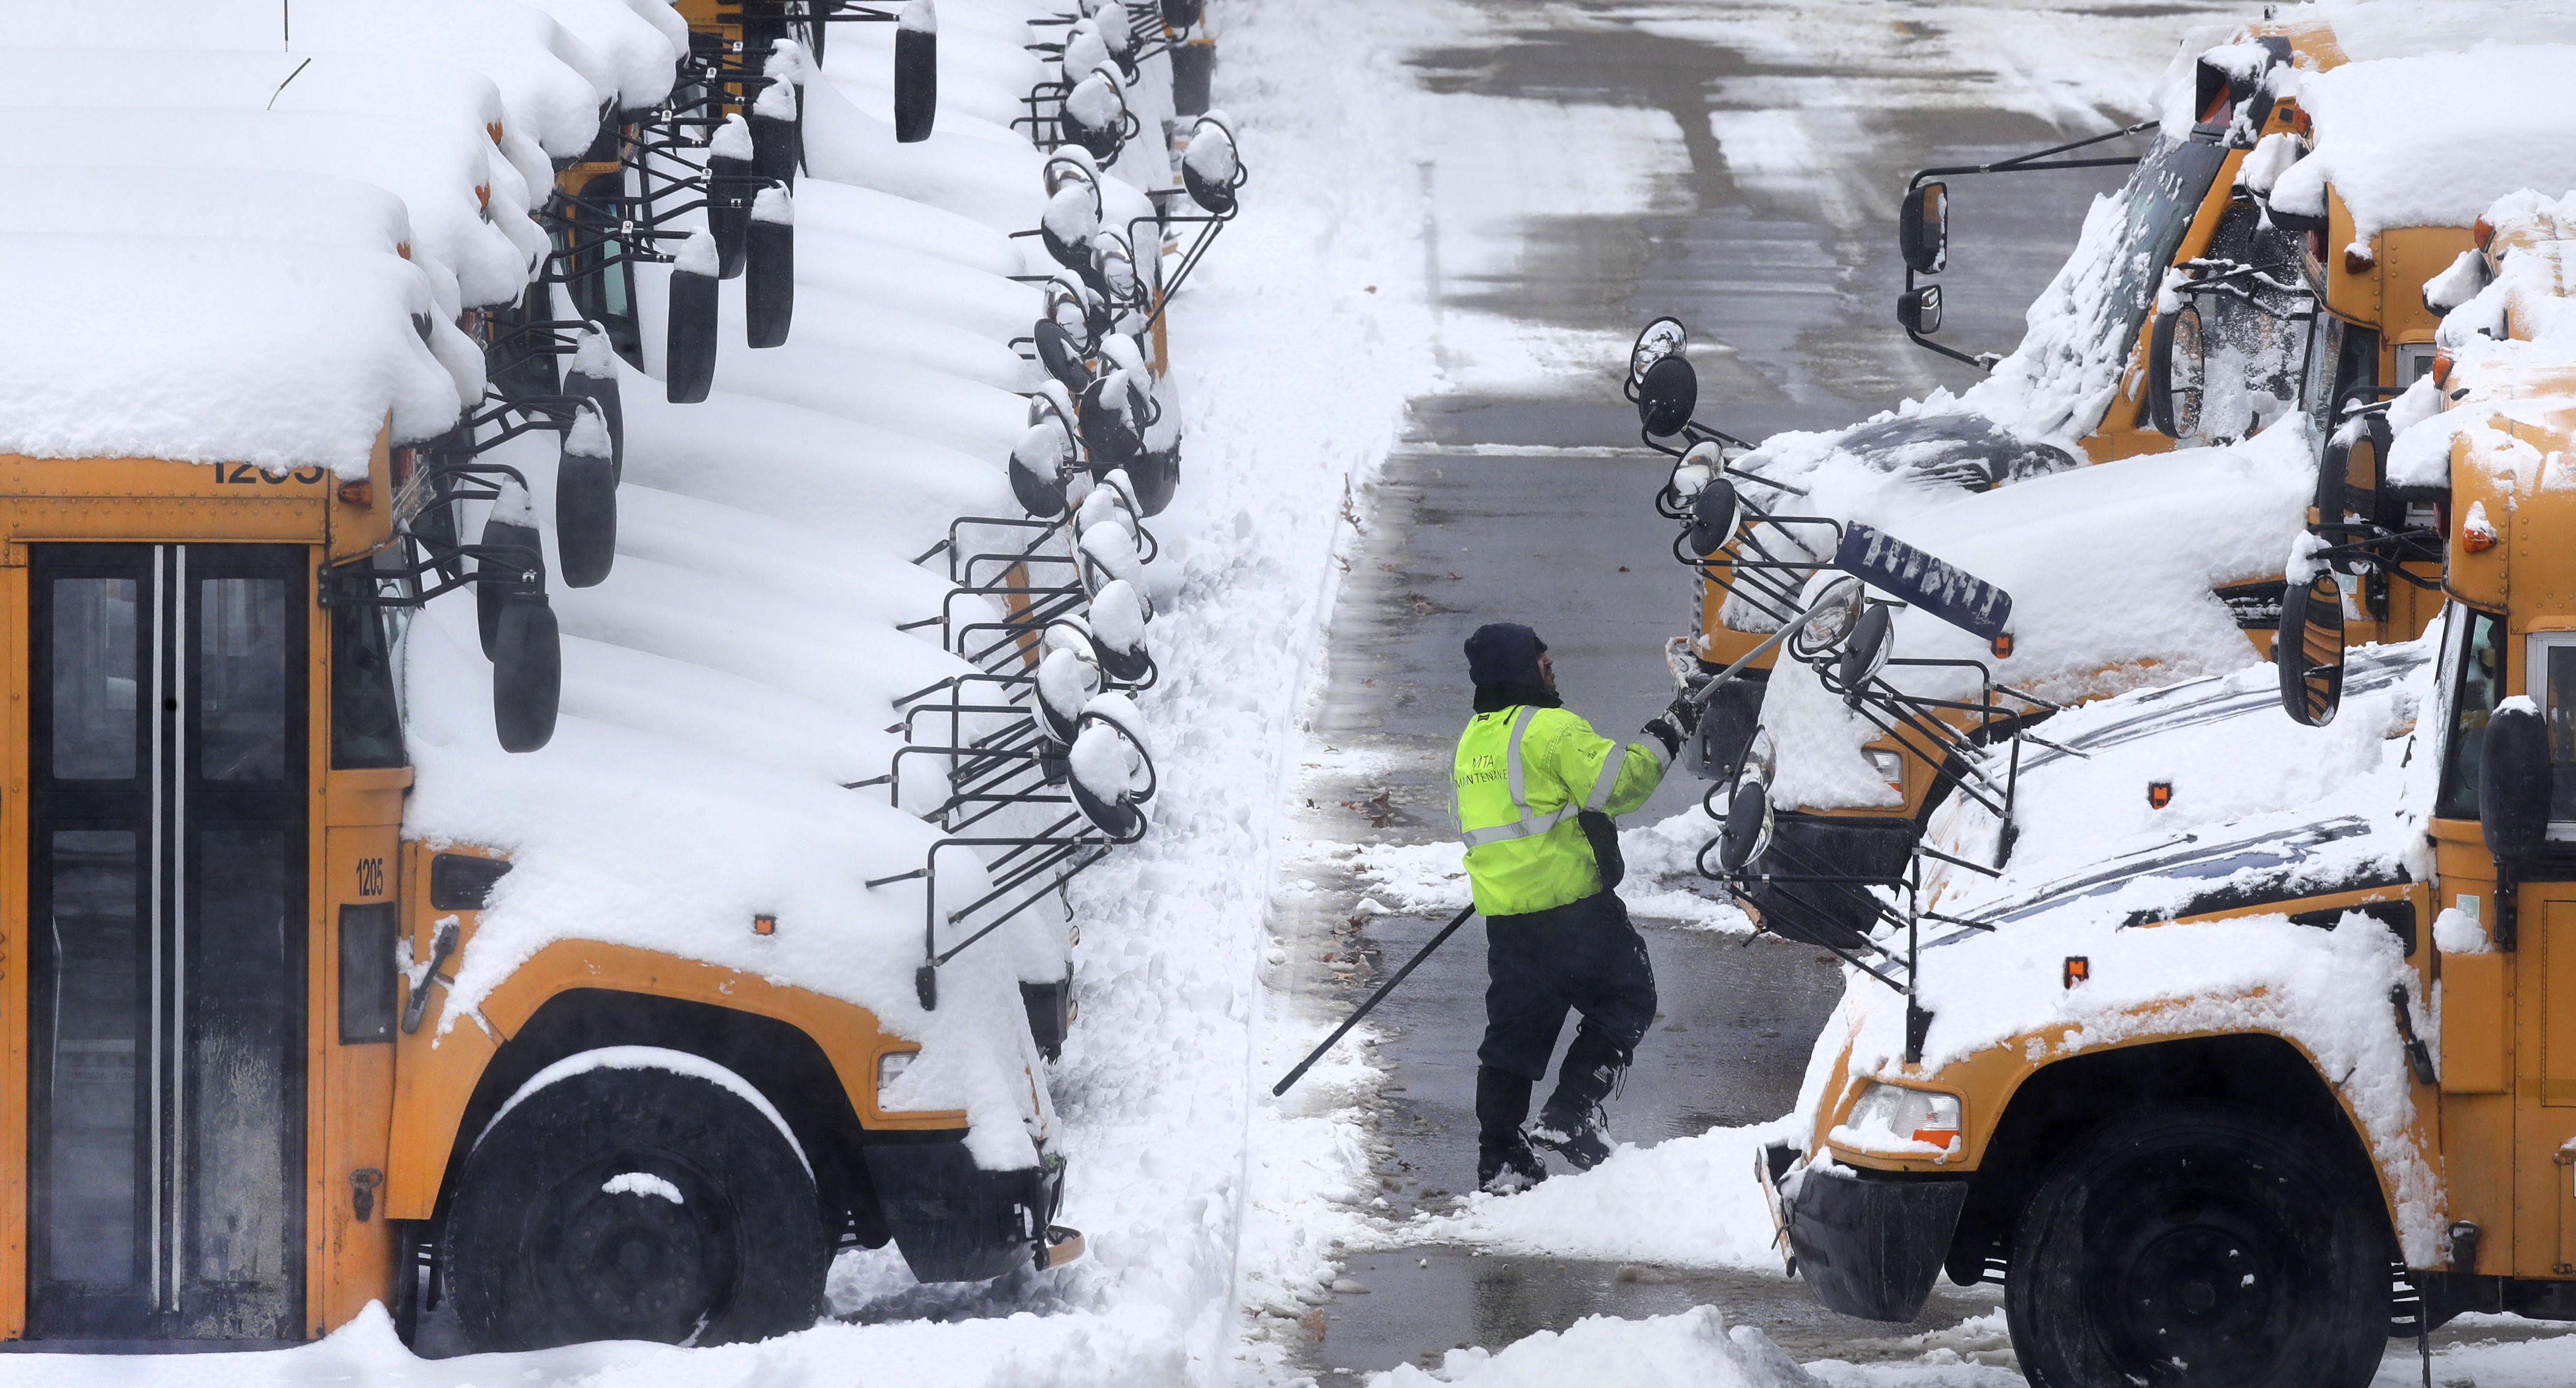 A worker clears snow off school buses, after schools were closed due to a storm, in Manchester, N.H., on Feb. 13, 2017. (AP Photo/Charles Krupa)